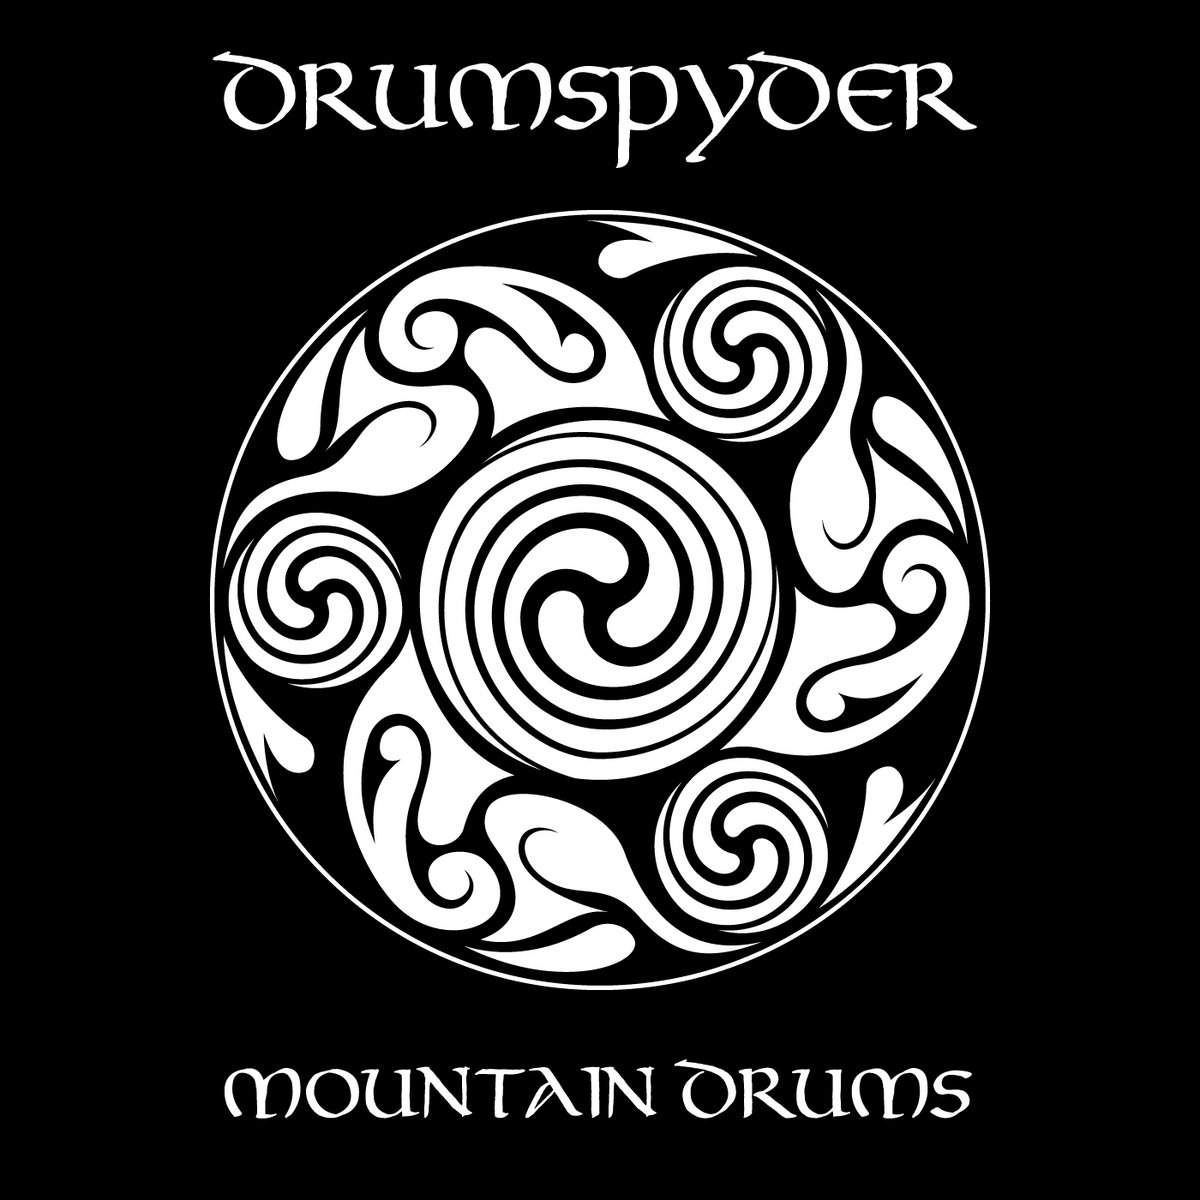 Mountain Drums by Drumspyder